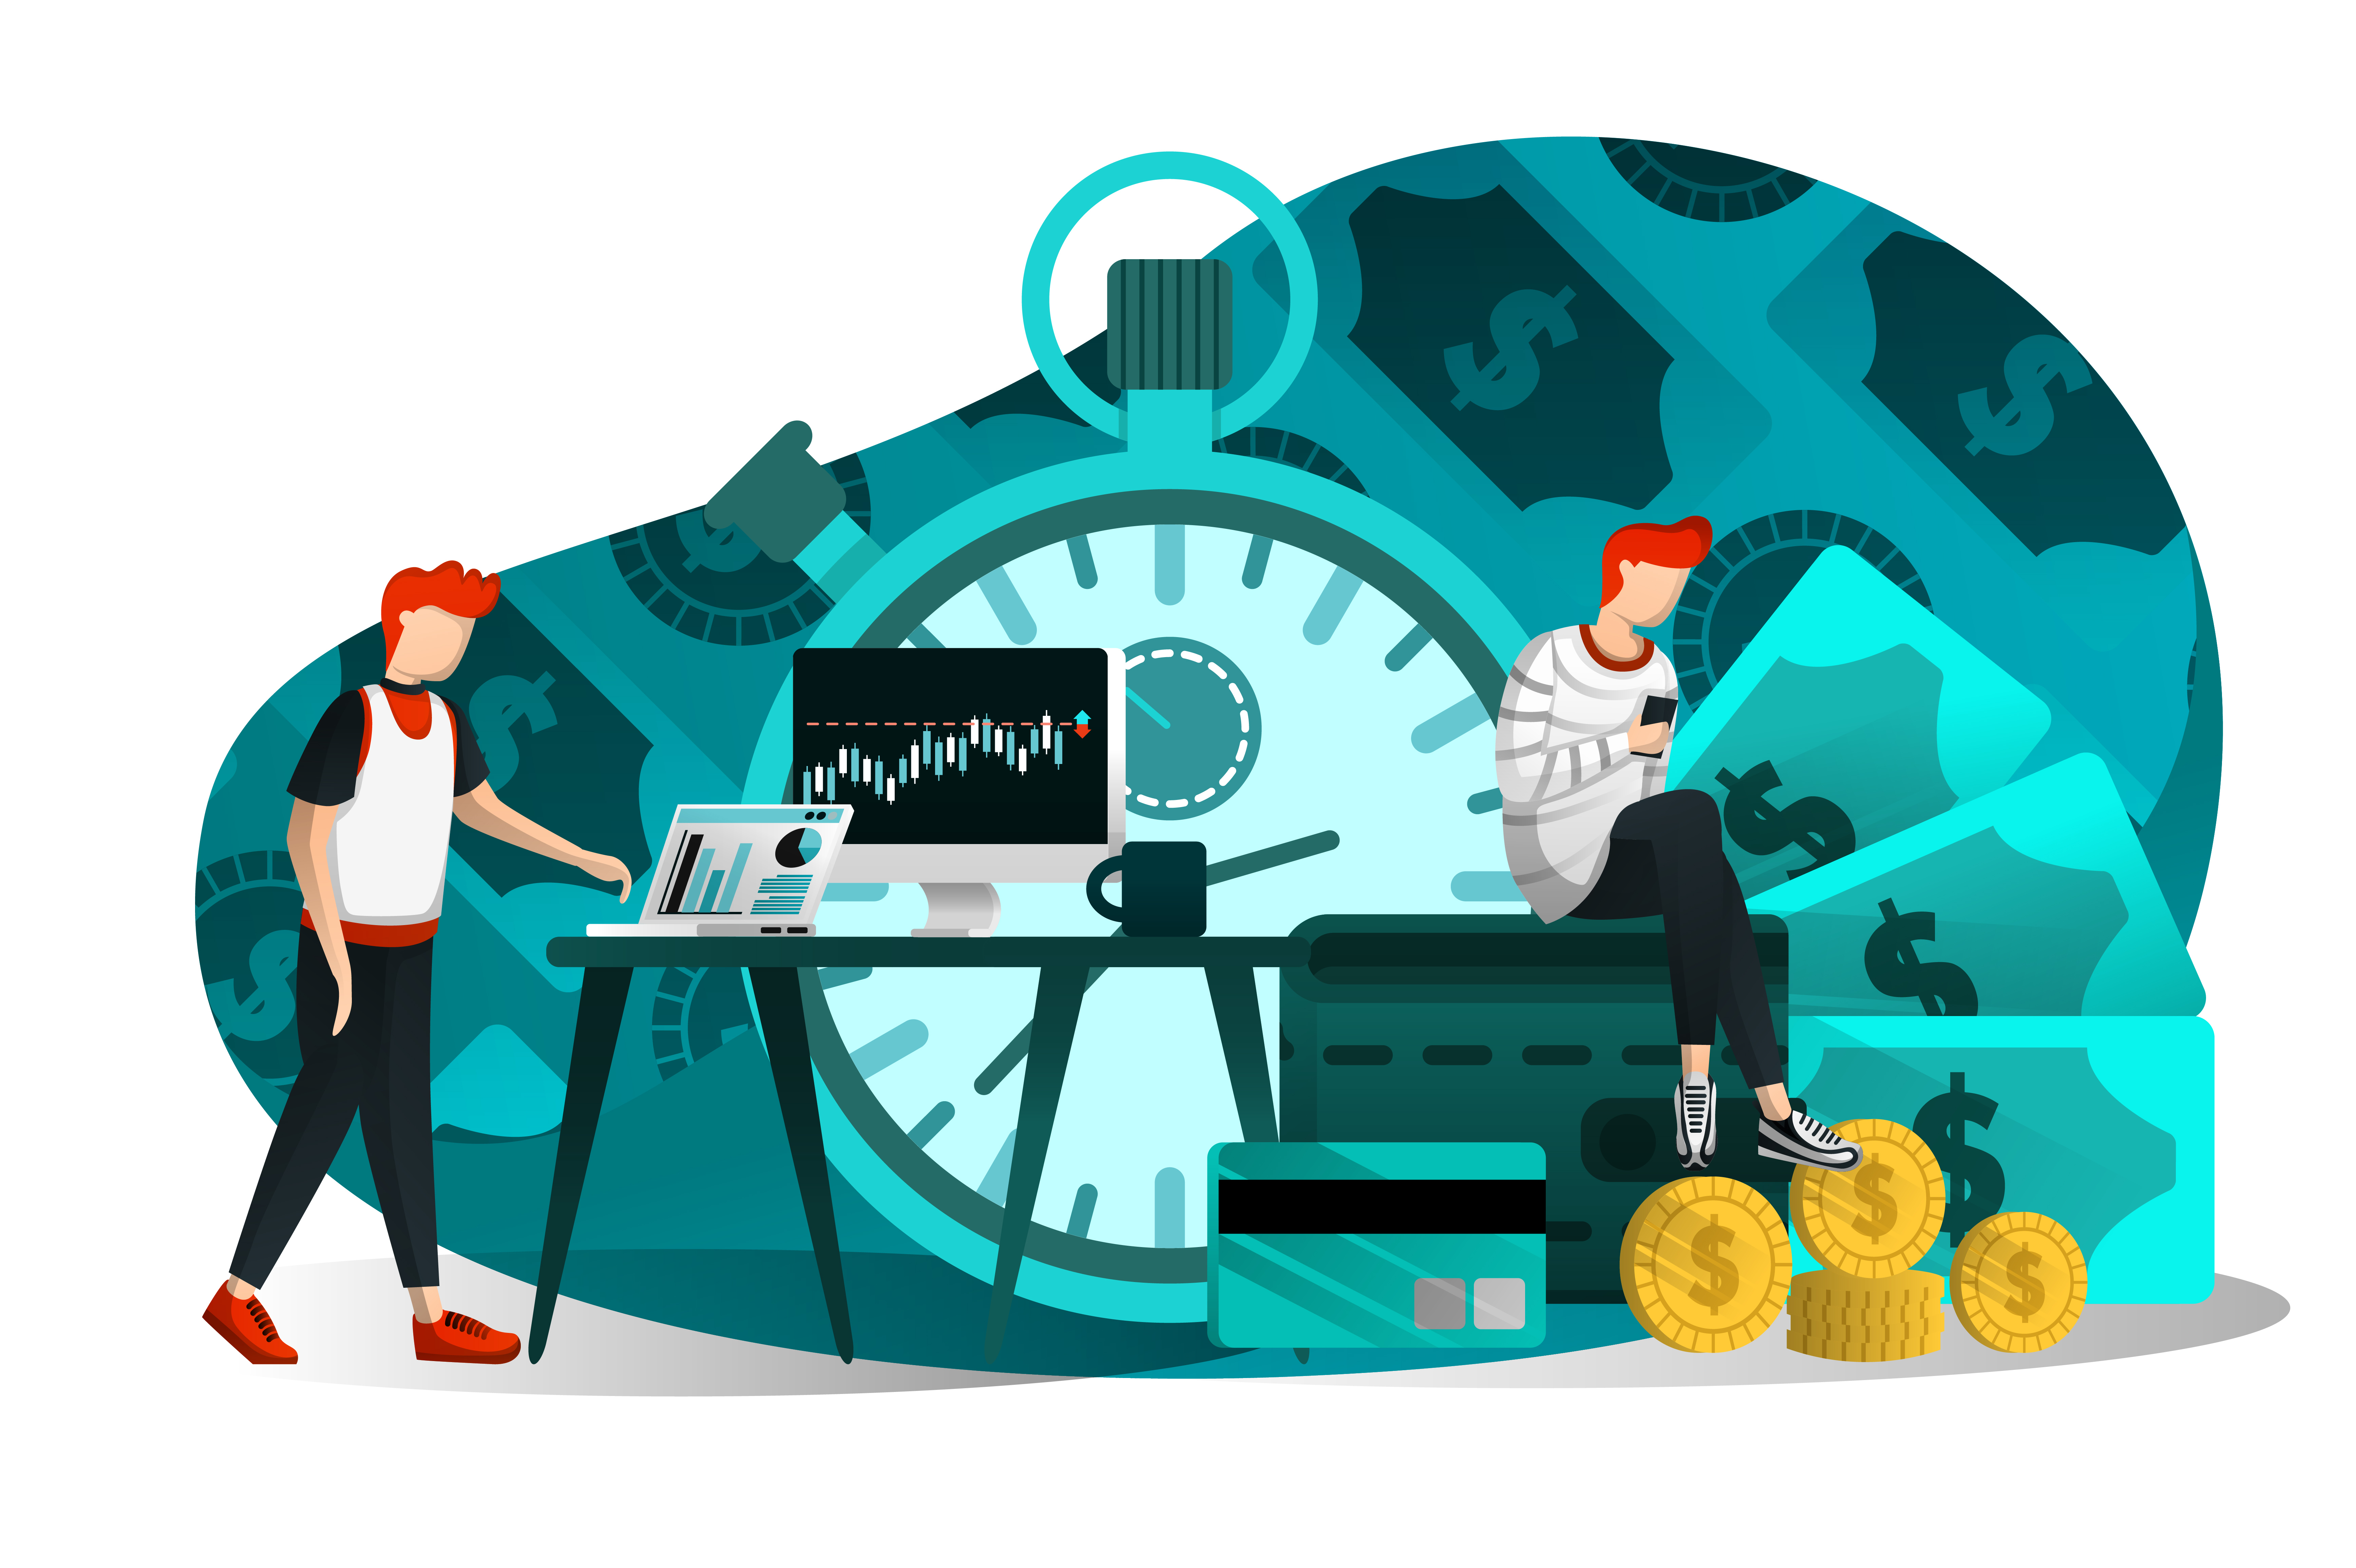 Download Free Vector Illustration Of Time Is Money Graphic By Setiawanarief111 for Cricut Explore, Silhouette and other cutting machines.